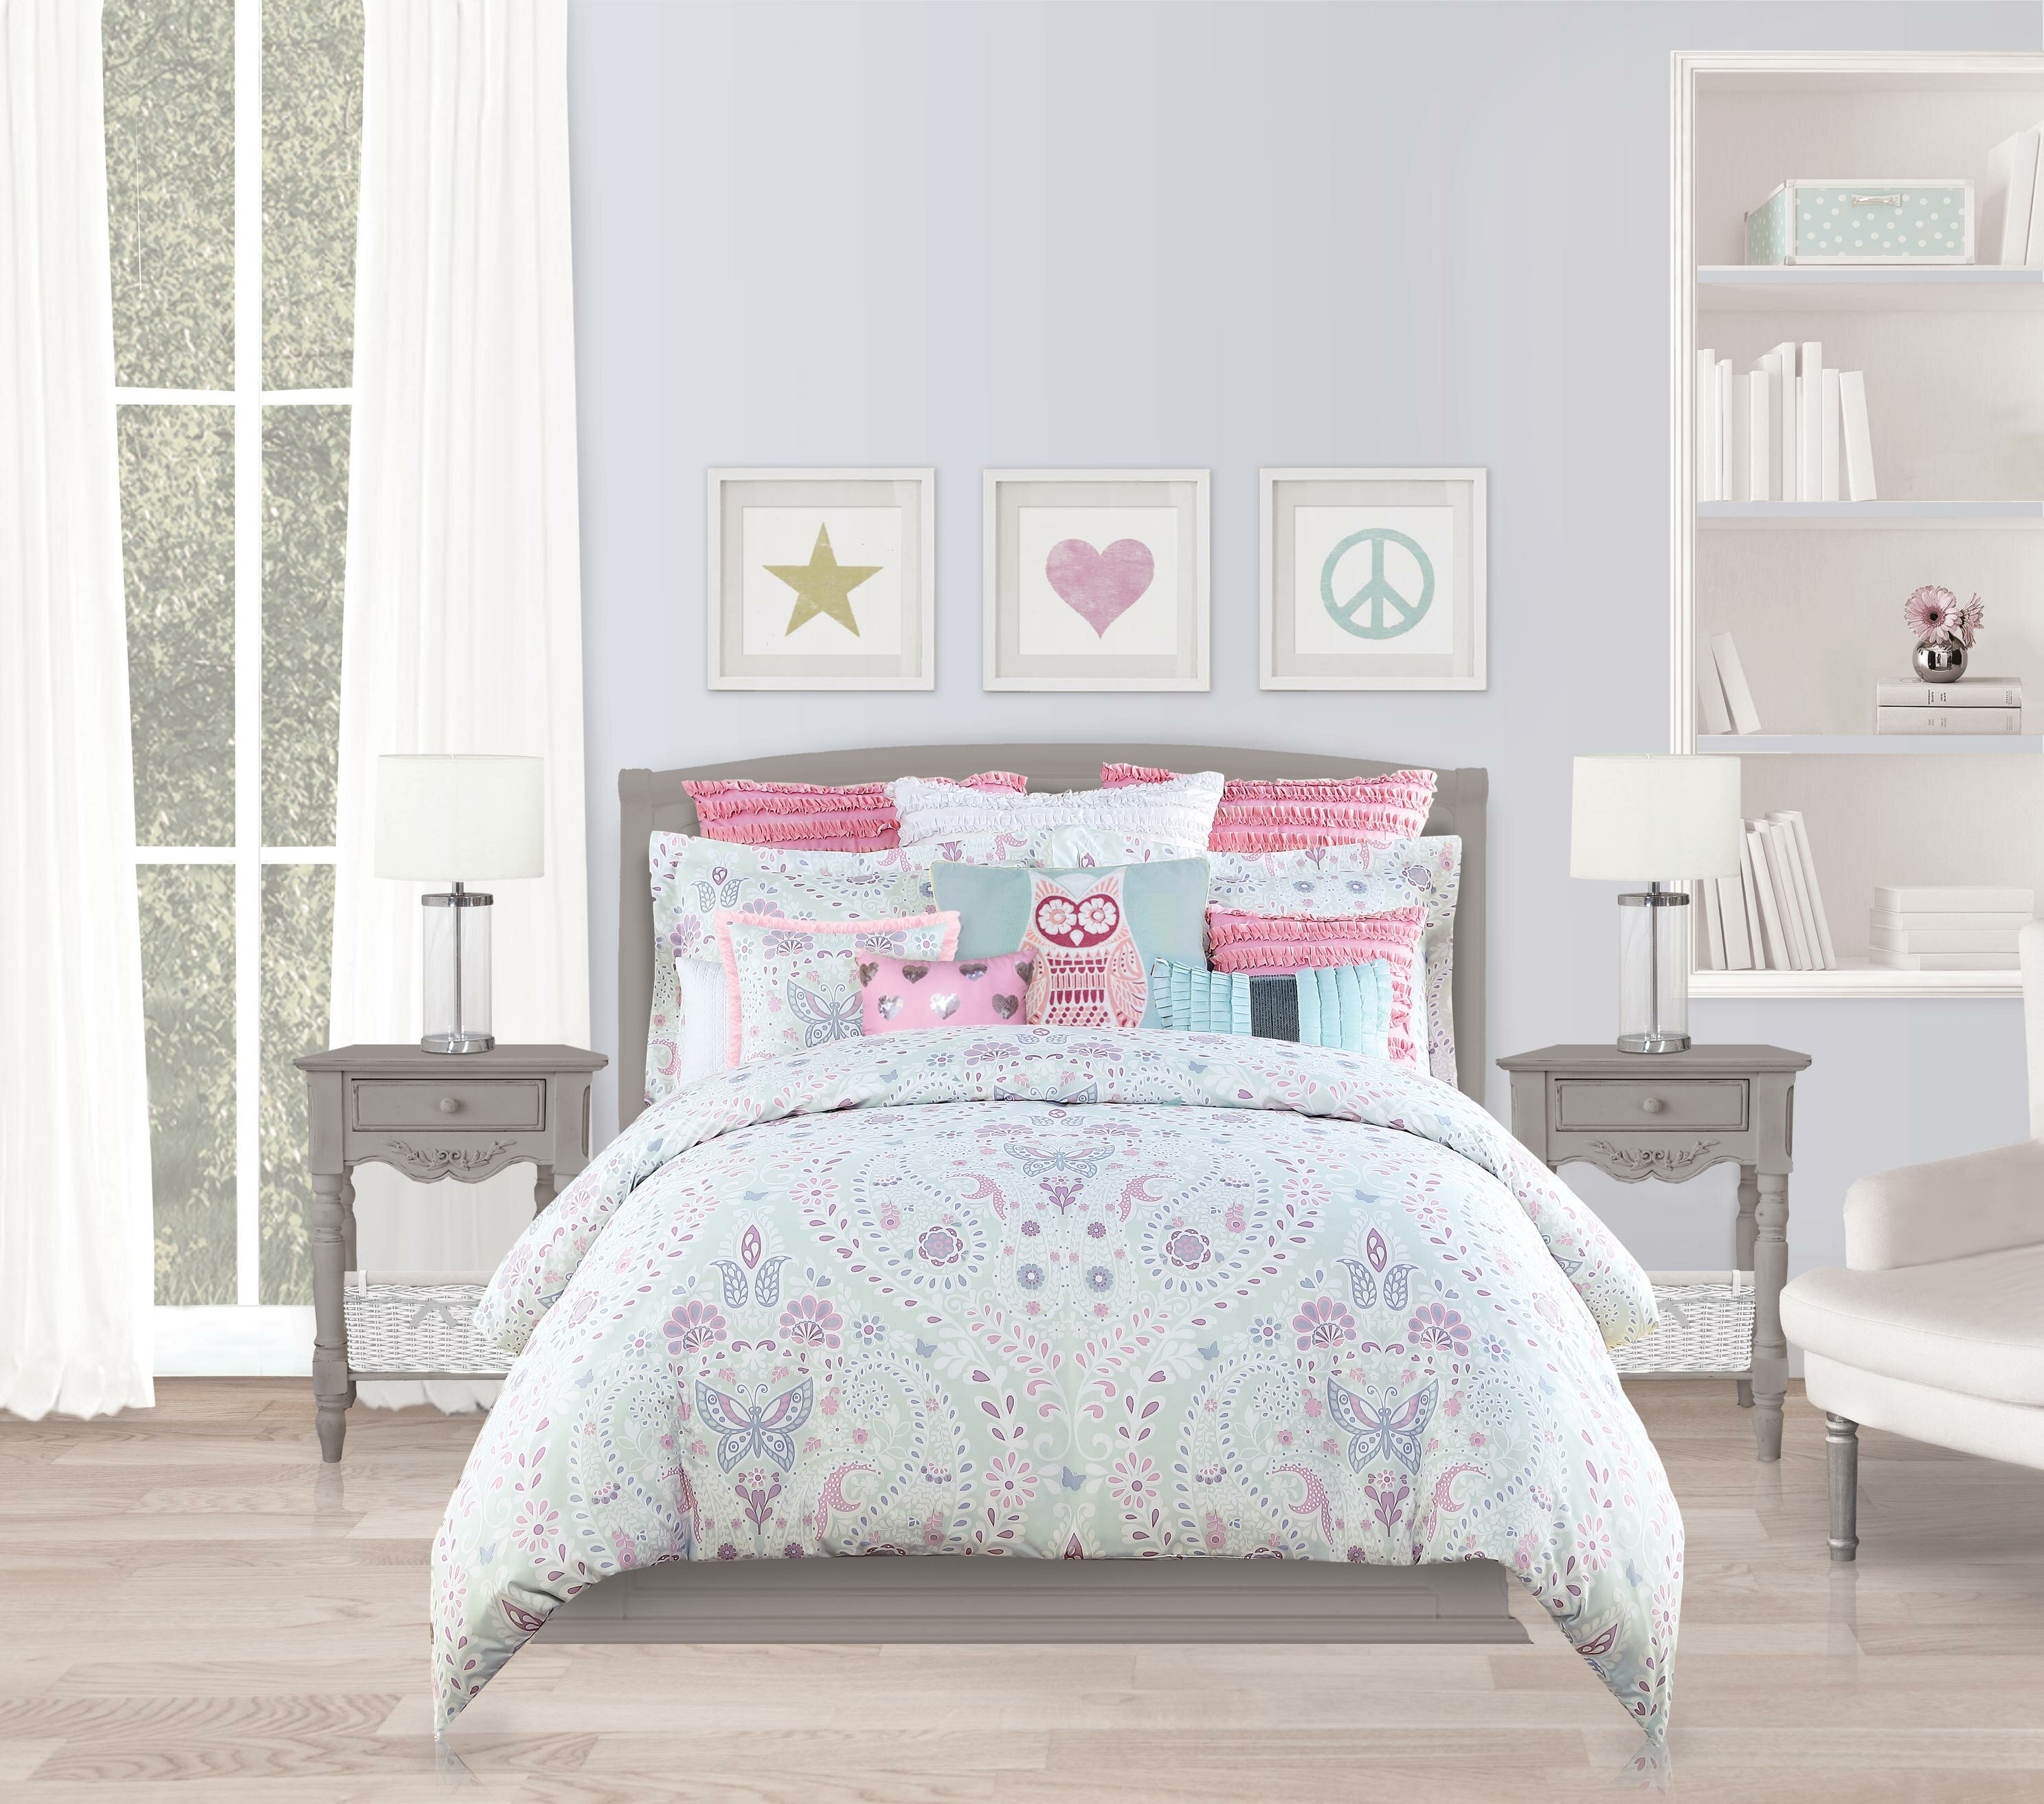 comforter pin your mira updated liven the set duvet mini ink paisley bedroom in up with ivy cover